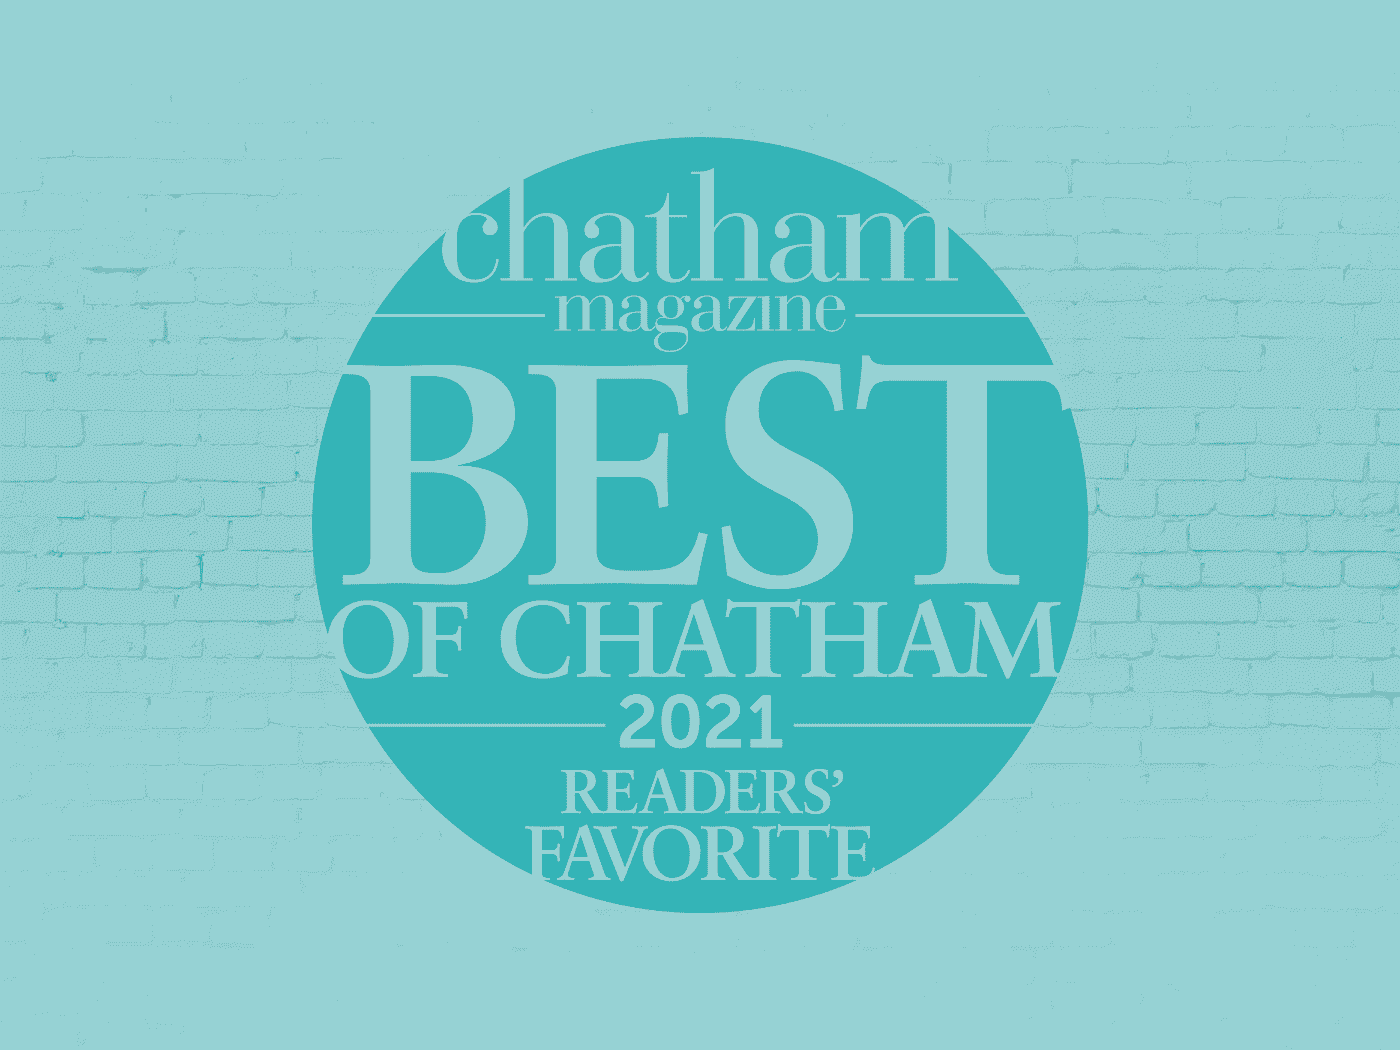 Vote Today for the Best of Chatham 2021